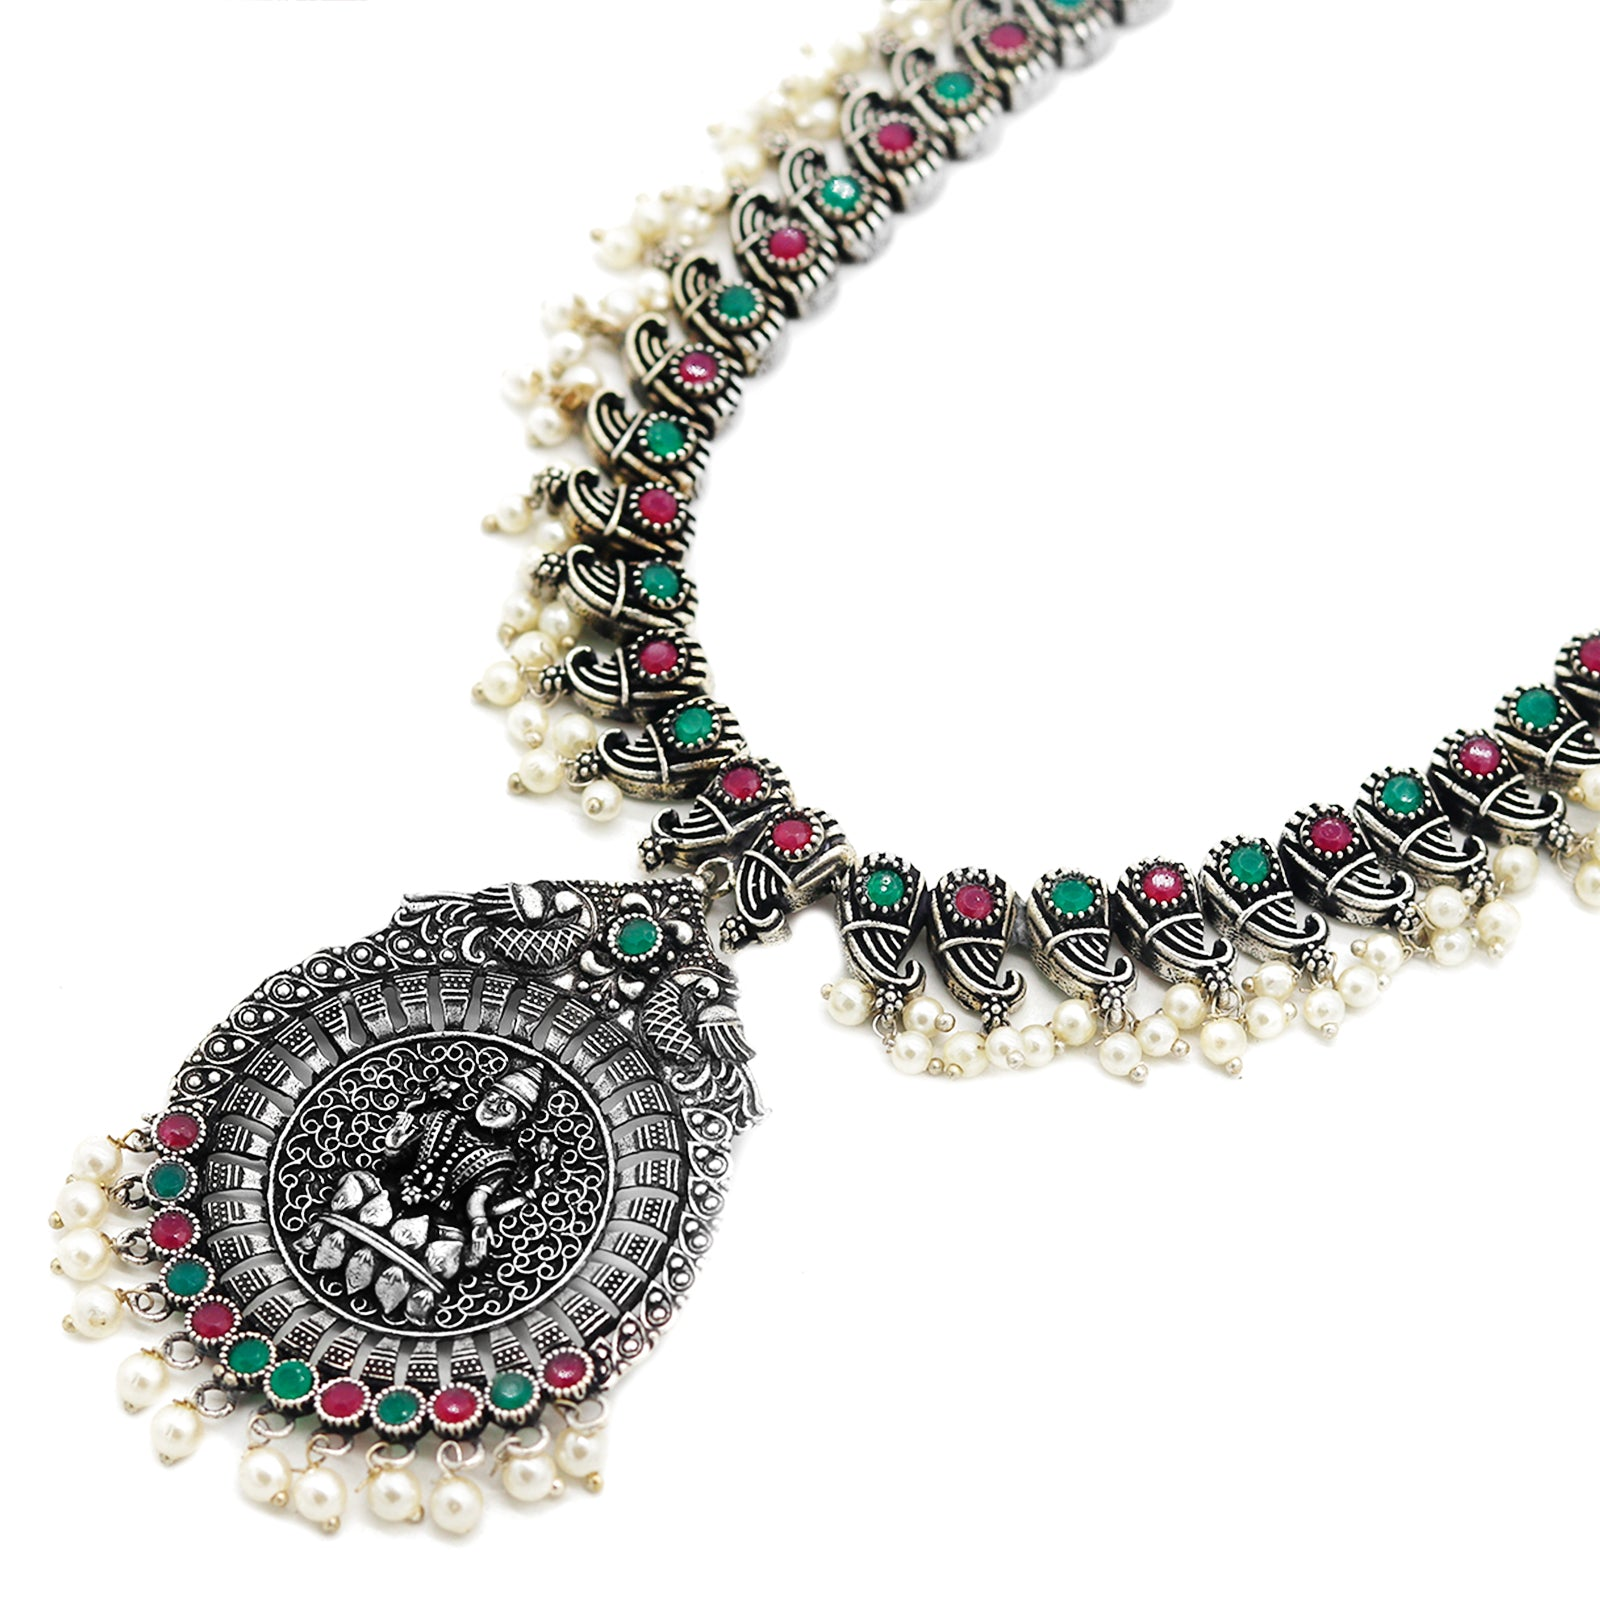 Naksh Multi Colored Silver Oxidized Jewelry Gift Set - Teejh